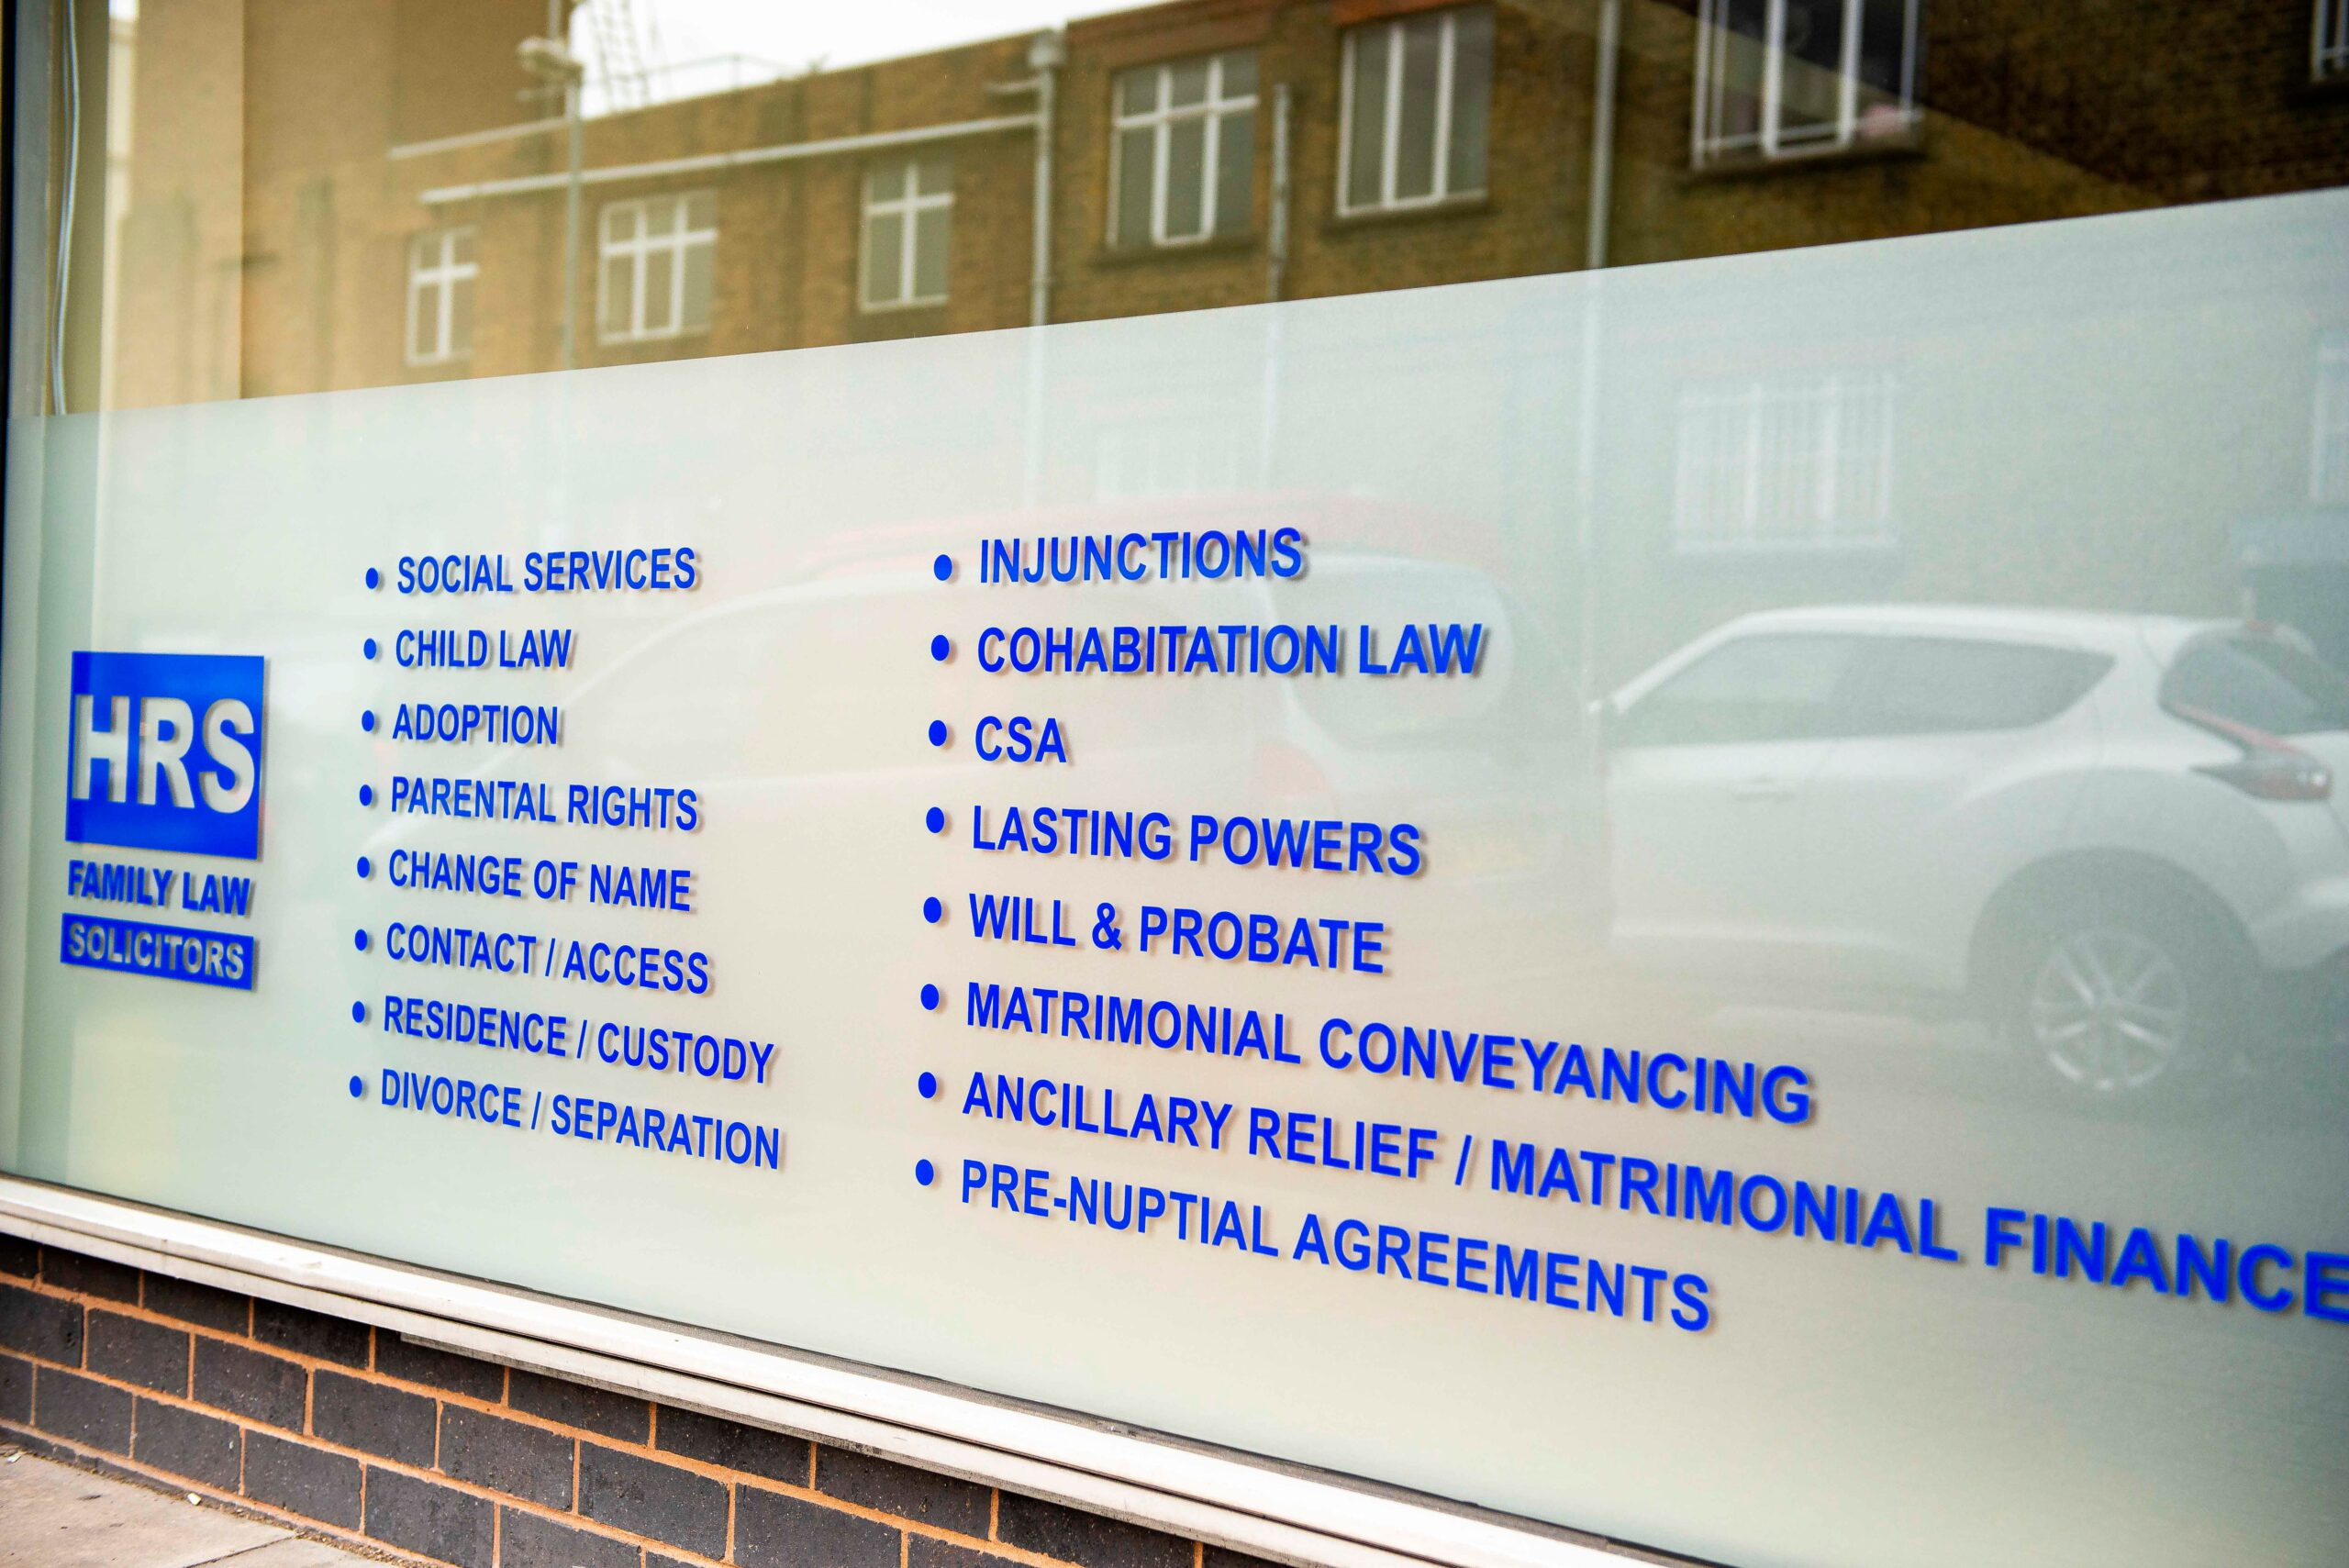 Solicitors services in Erdington